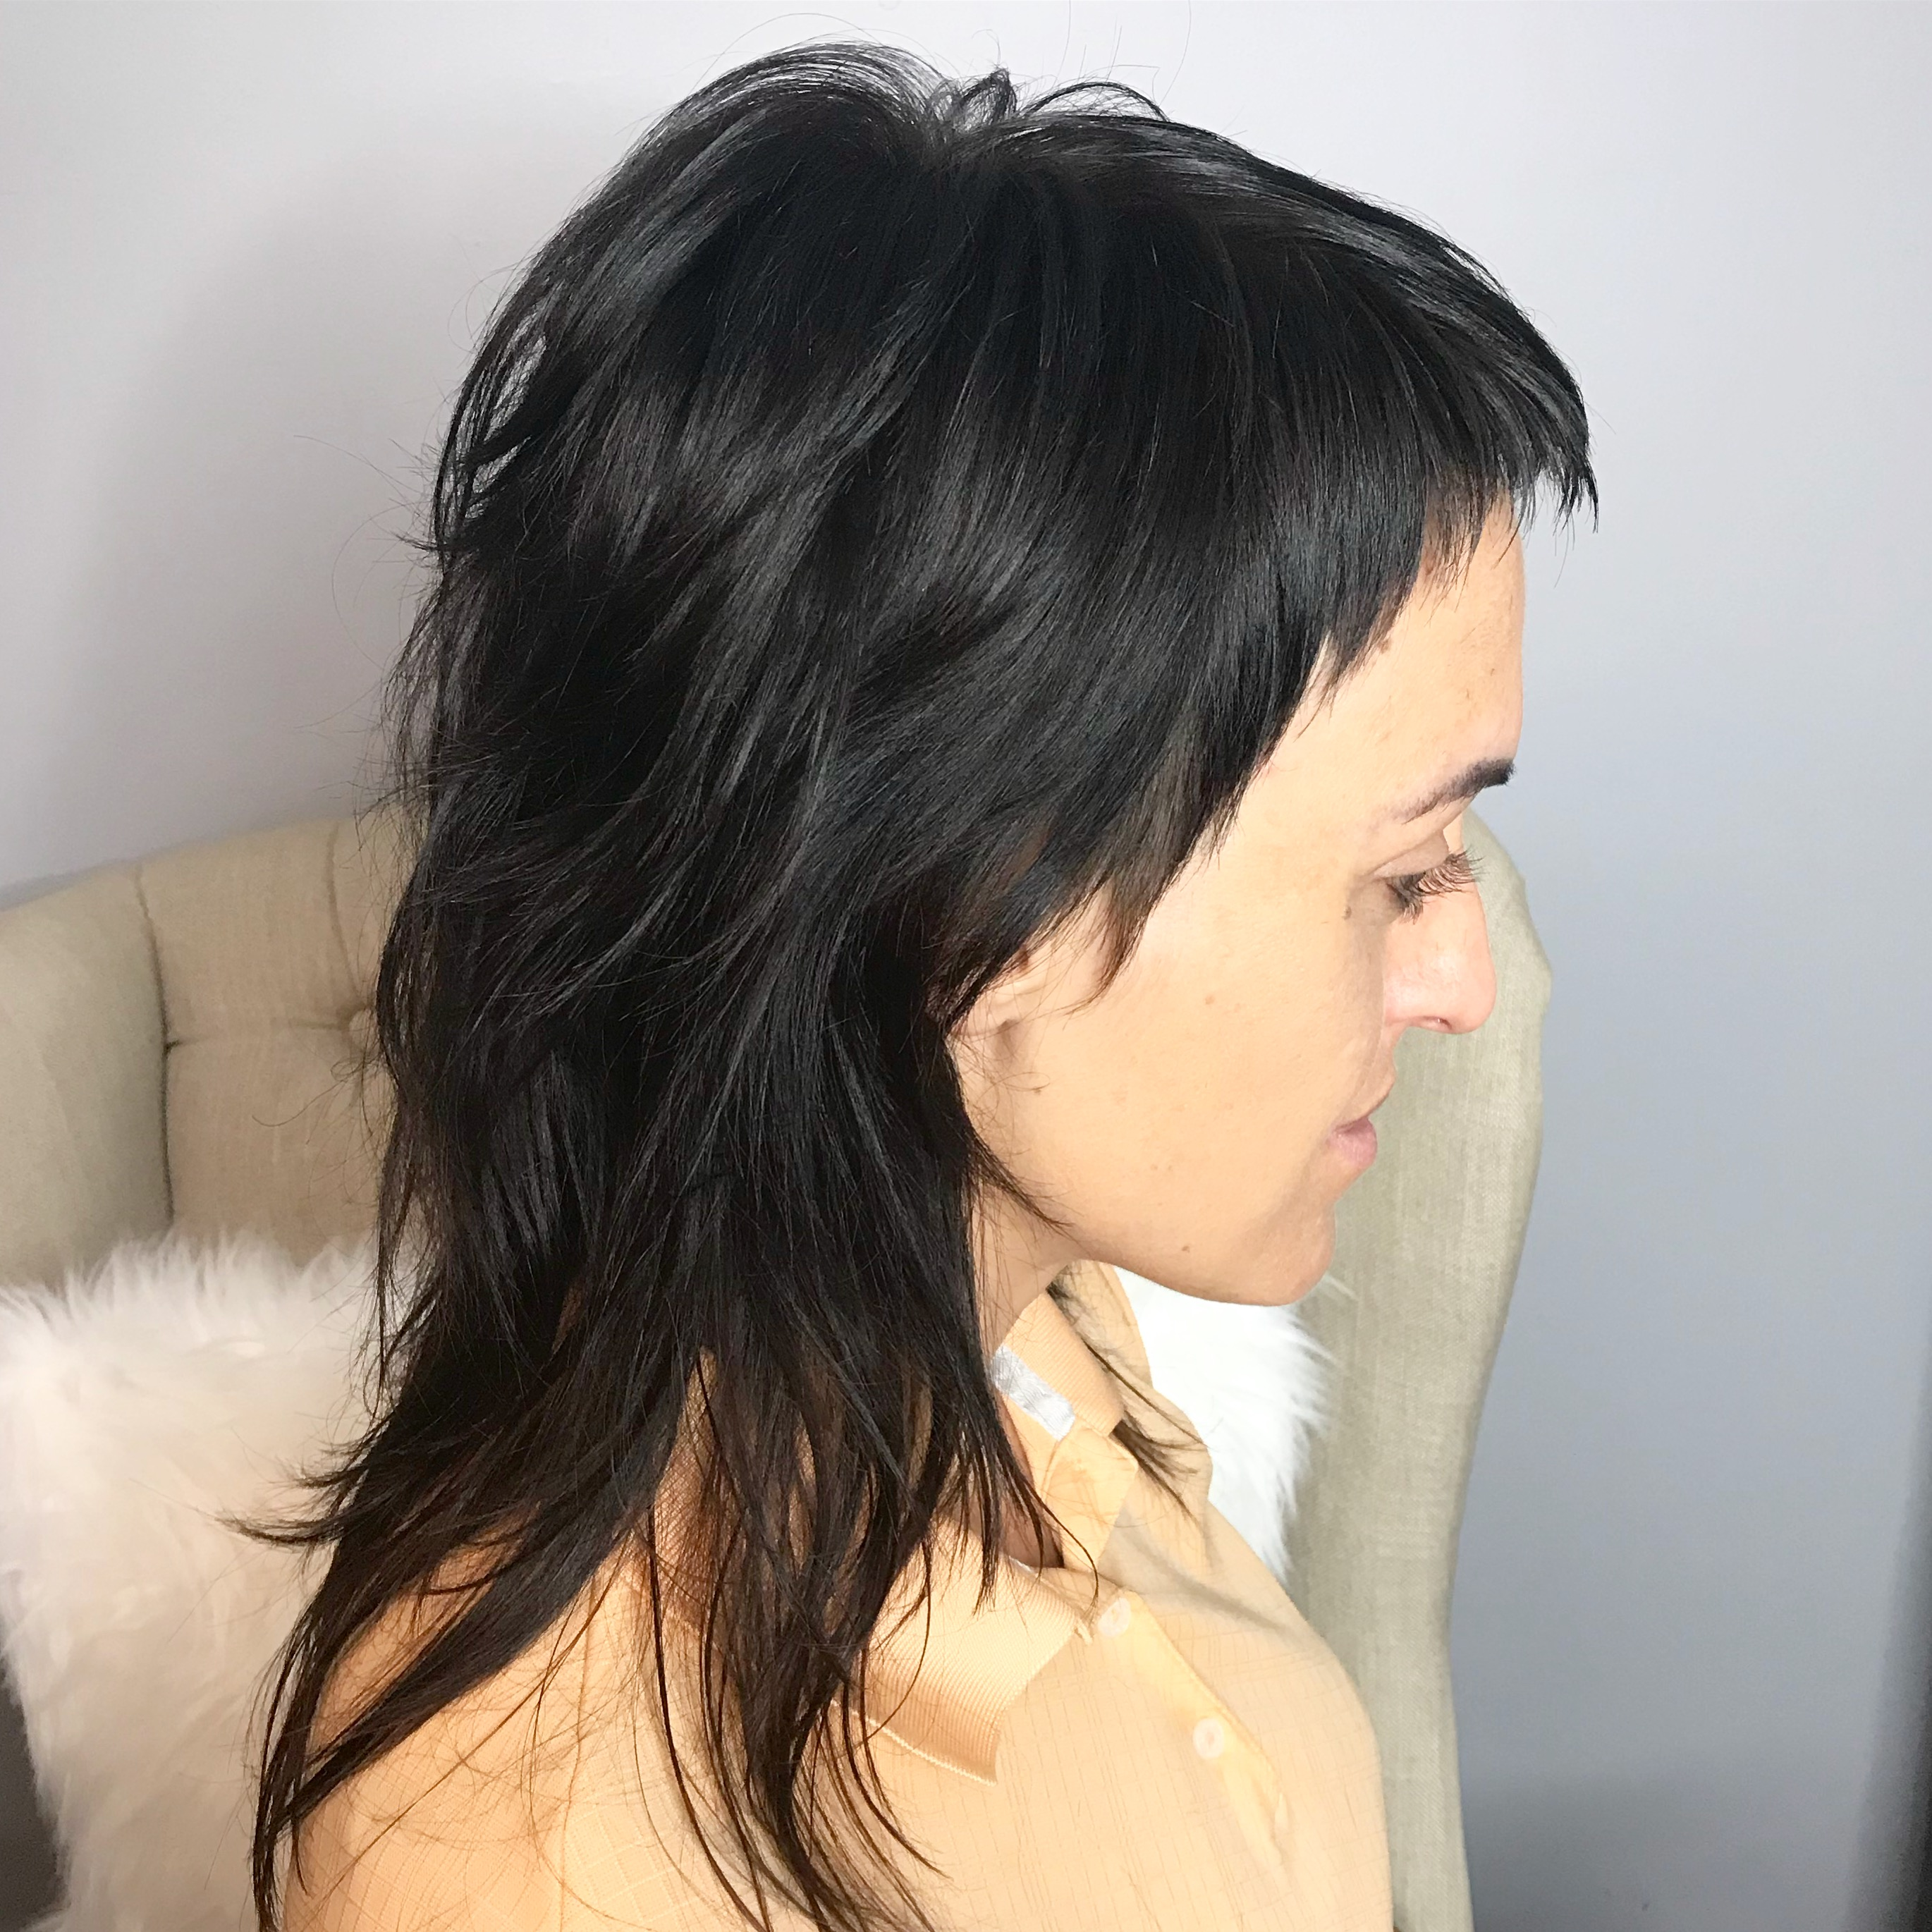 Modern Mullet style cut